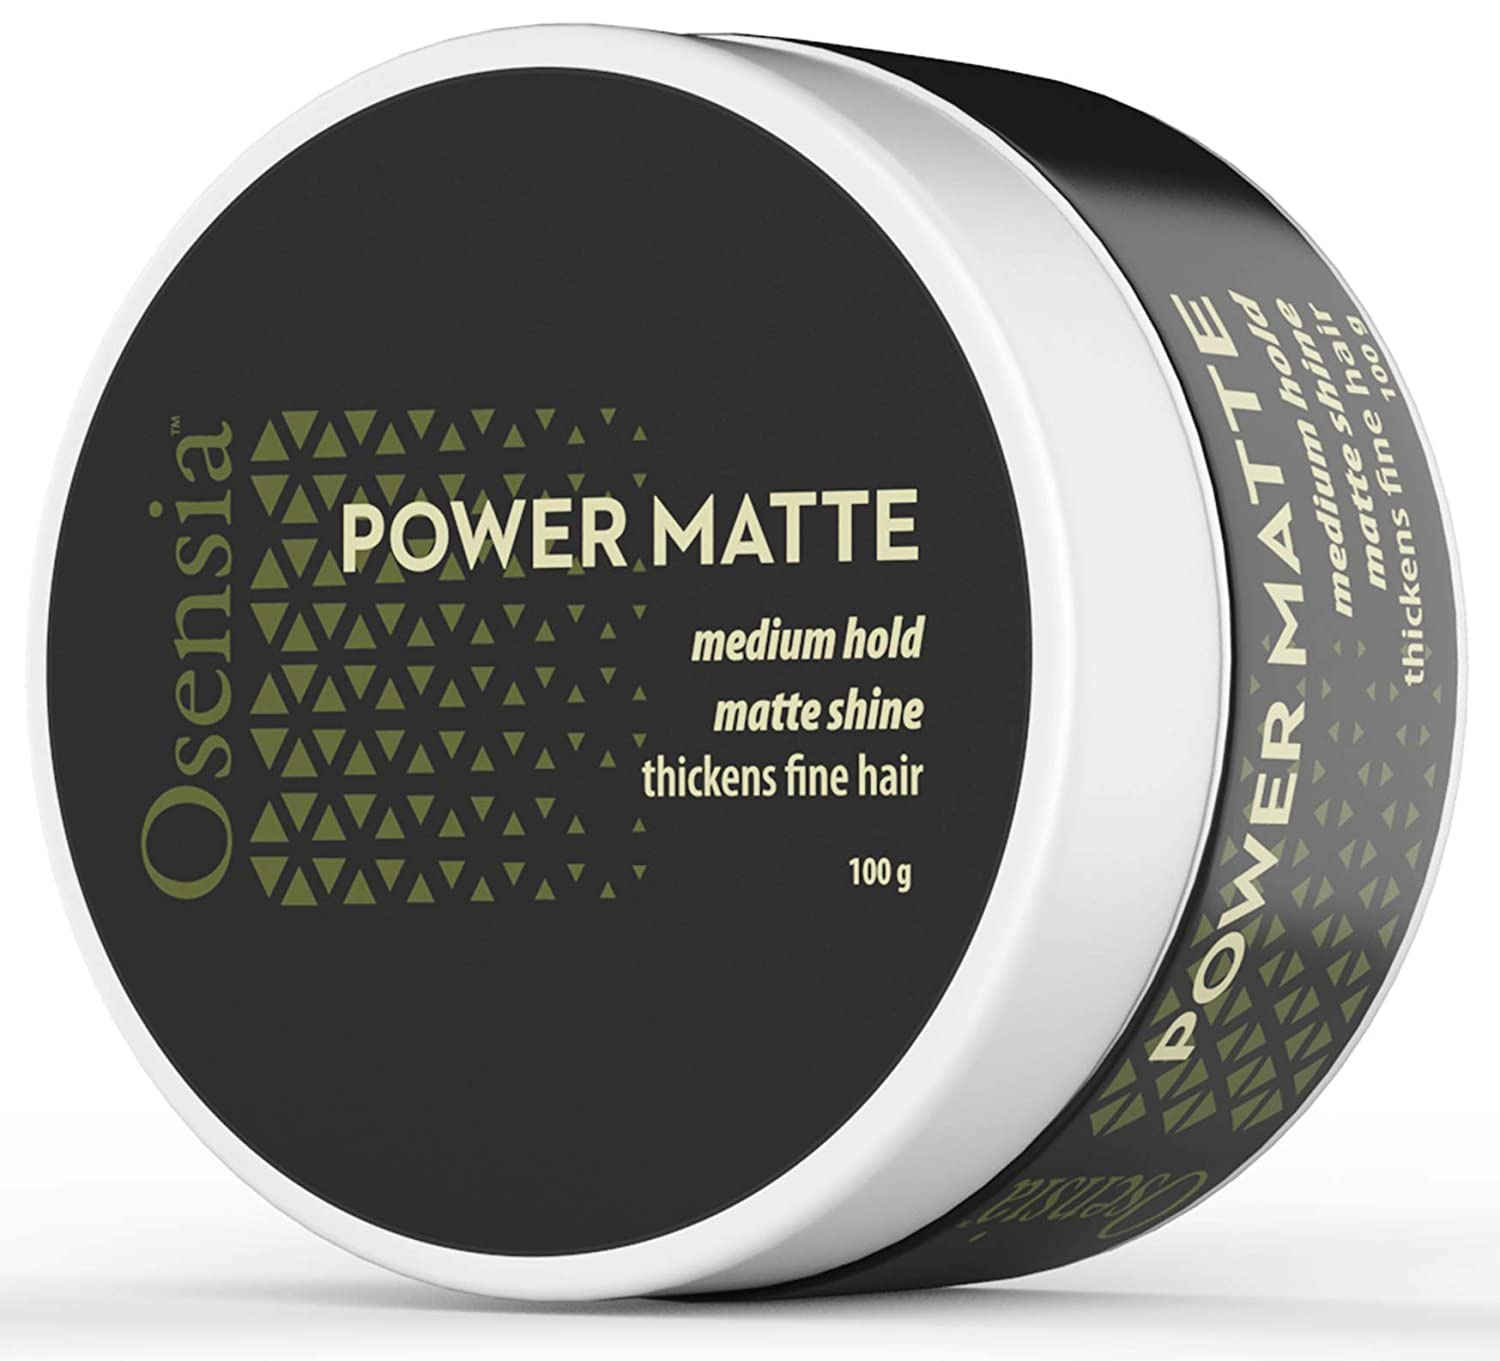 Matte Hair Clay - Water Based Hair Styling Gel with Matte Finish and Medium Hold for Natural Styling